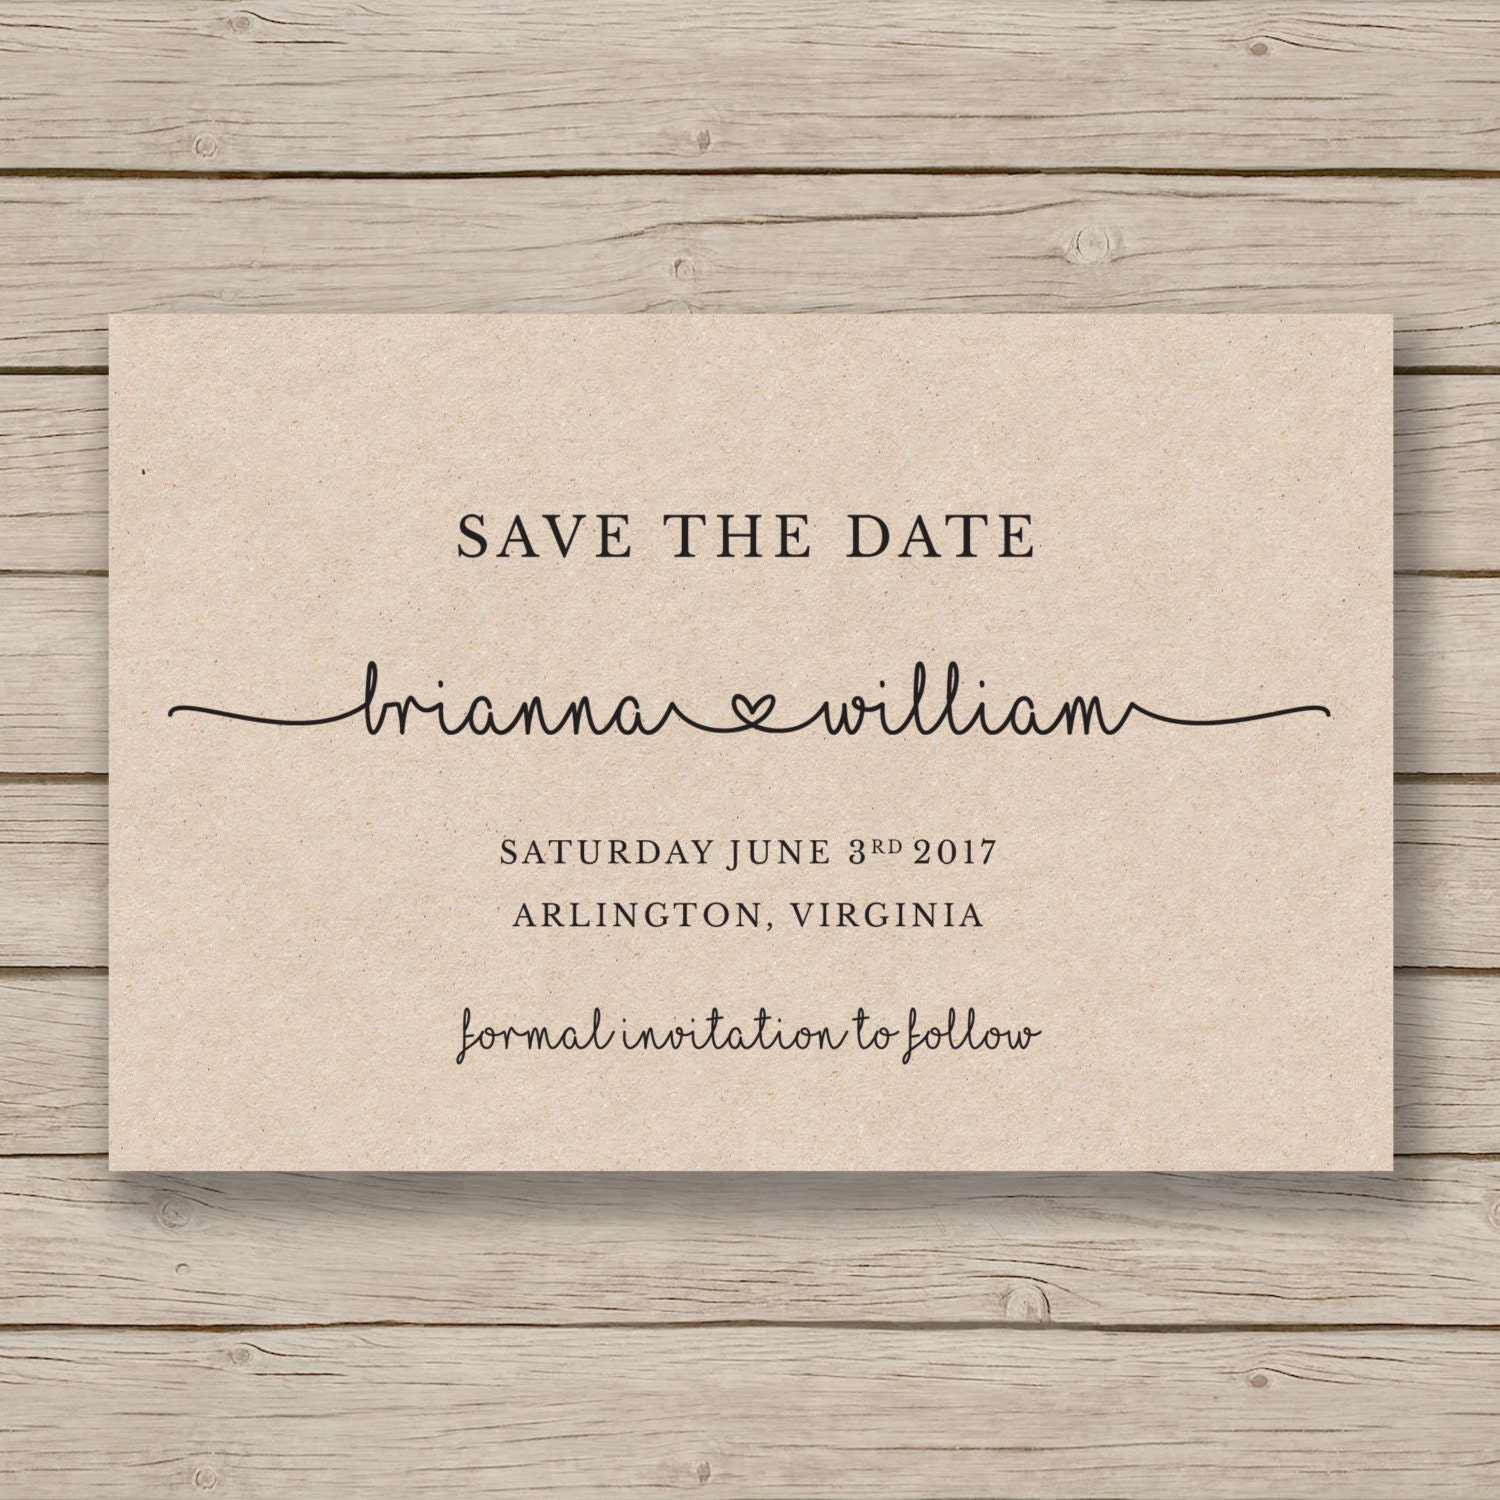 wedding save the date templates in word for free